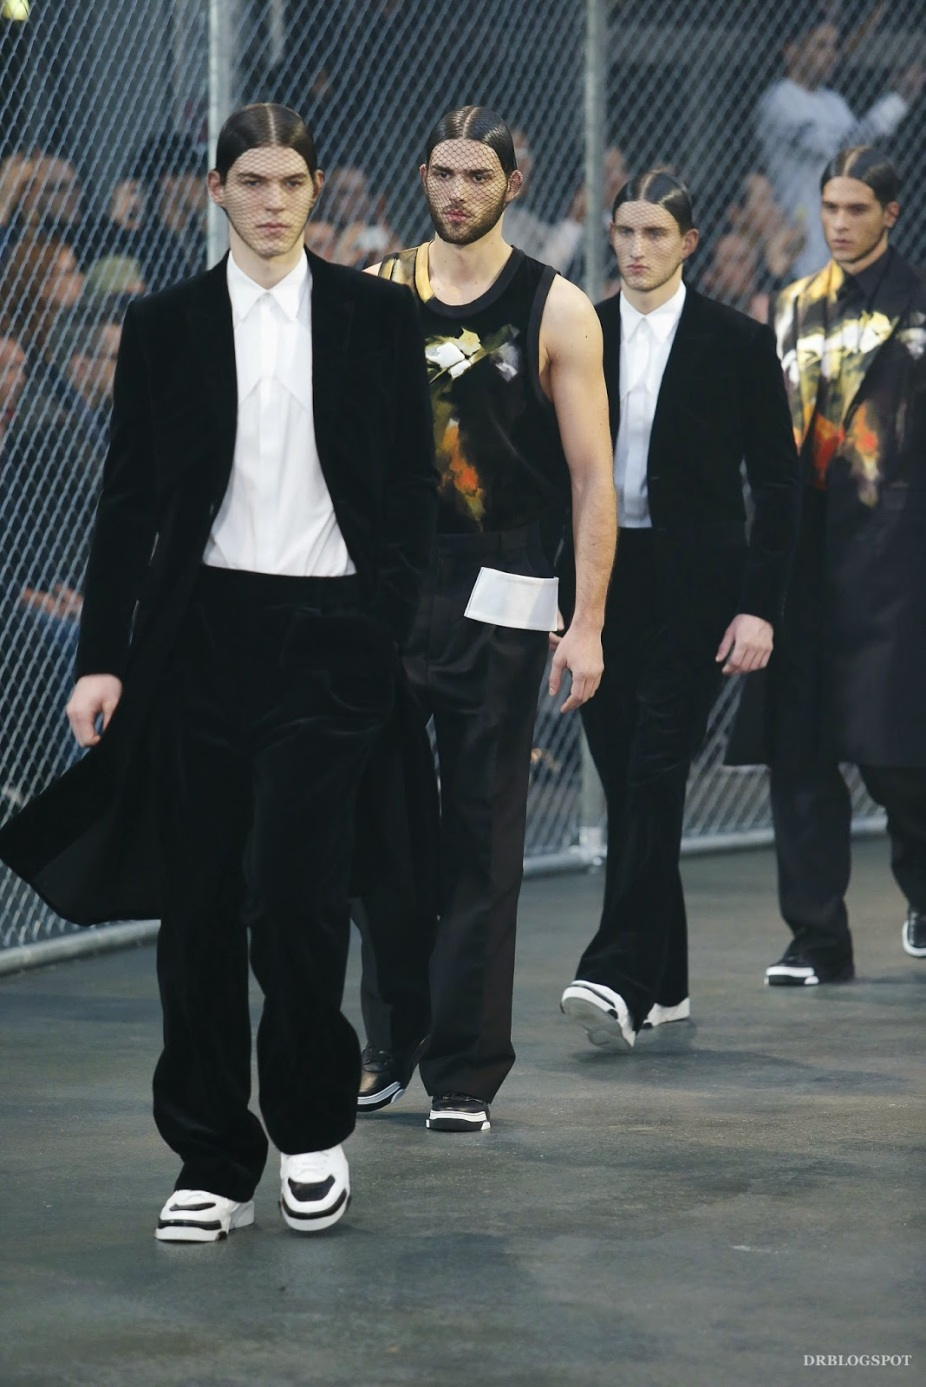 Givenchy-Fall-Winter-2014-Men-Paris-Fashion-Week-Menswear-Basketball-00570h_20140117171814